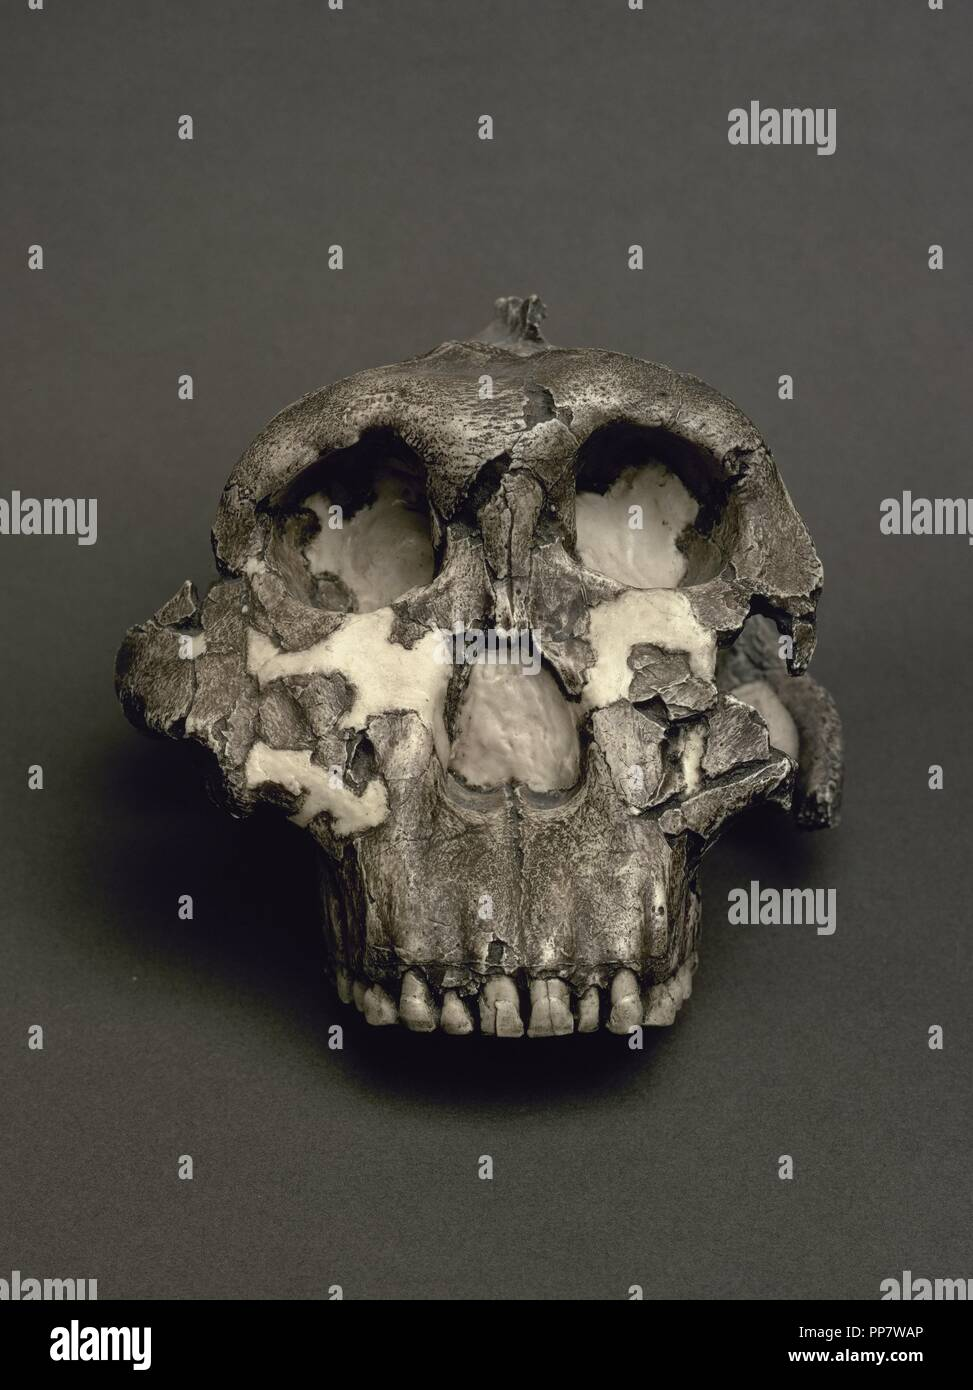 Reproduction of a Cranium of Paranthropus boisei, named Dear Boy. 1,8 million years. From Olduvai Gorge, Tanzania. National Archaeological Museum. Madrid. Spain. - Stock Image